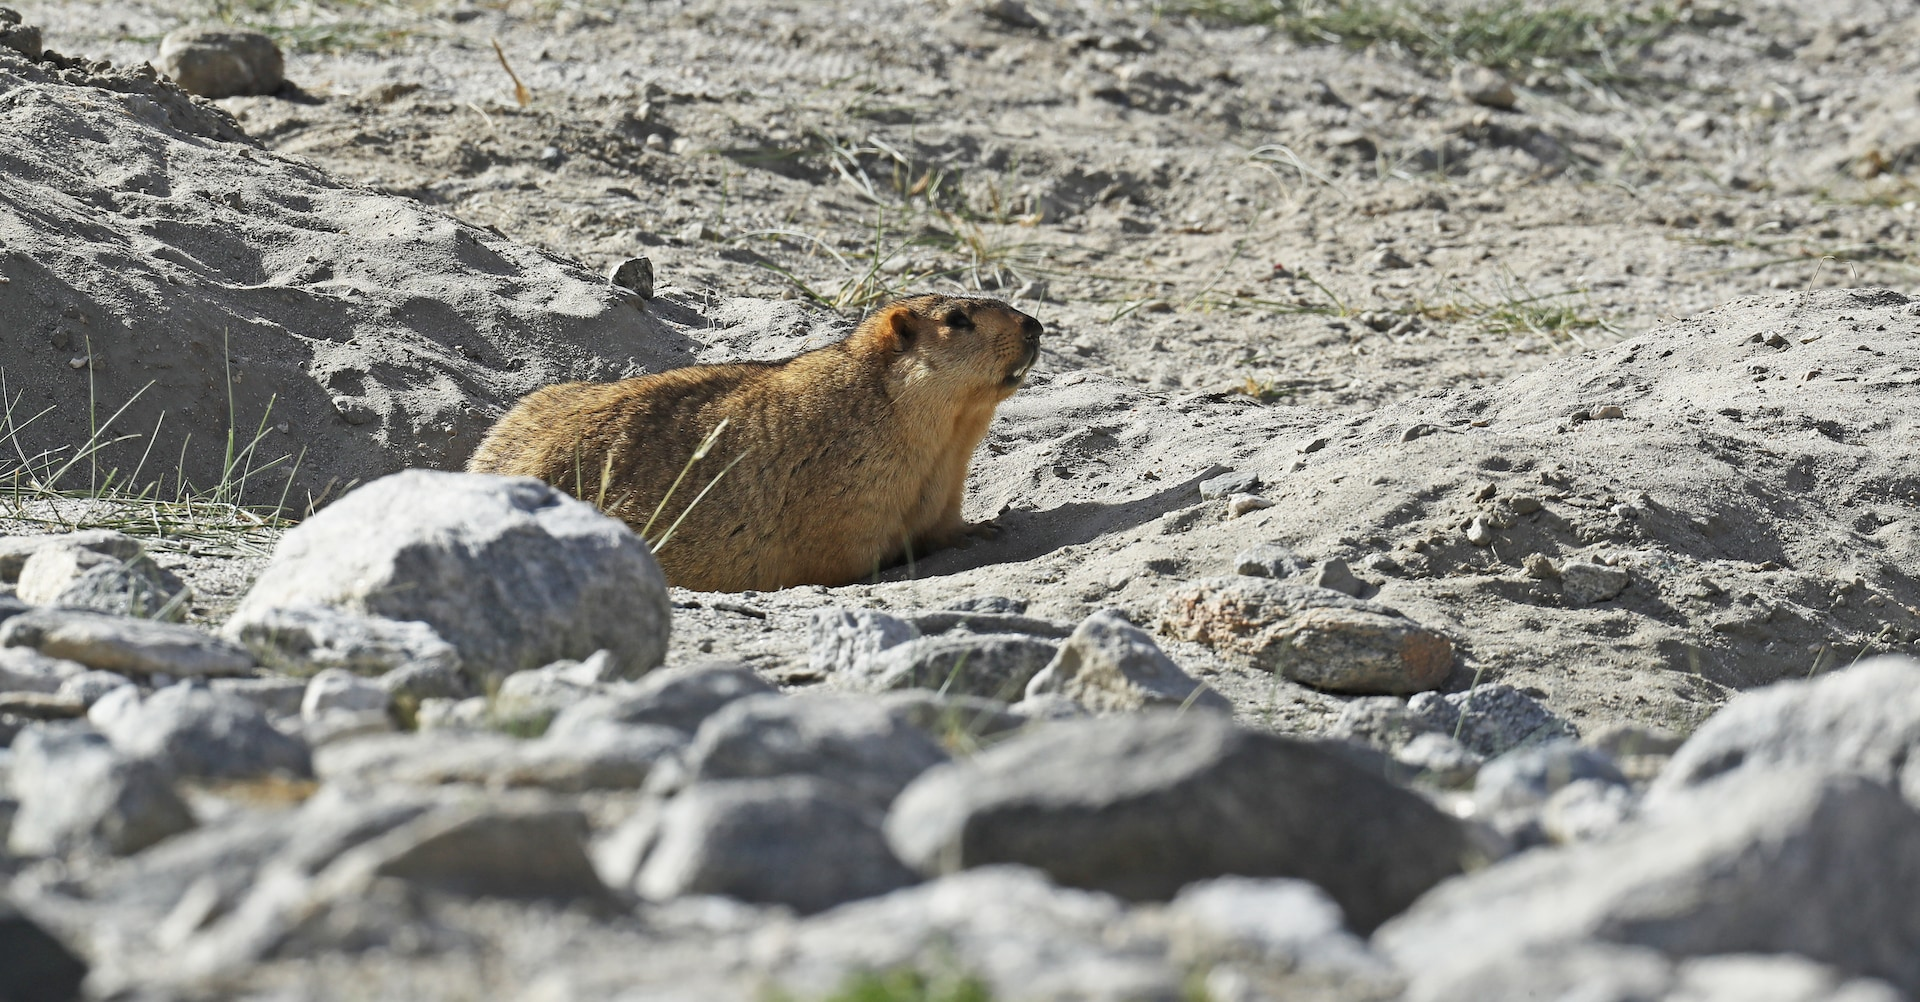 When marmots are in their comfort zone they will often rest on their bellies near their burrows. Photo: Imran Shan